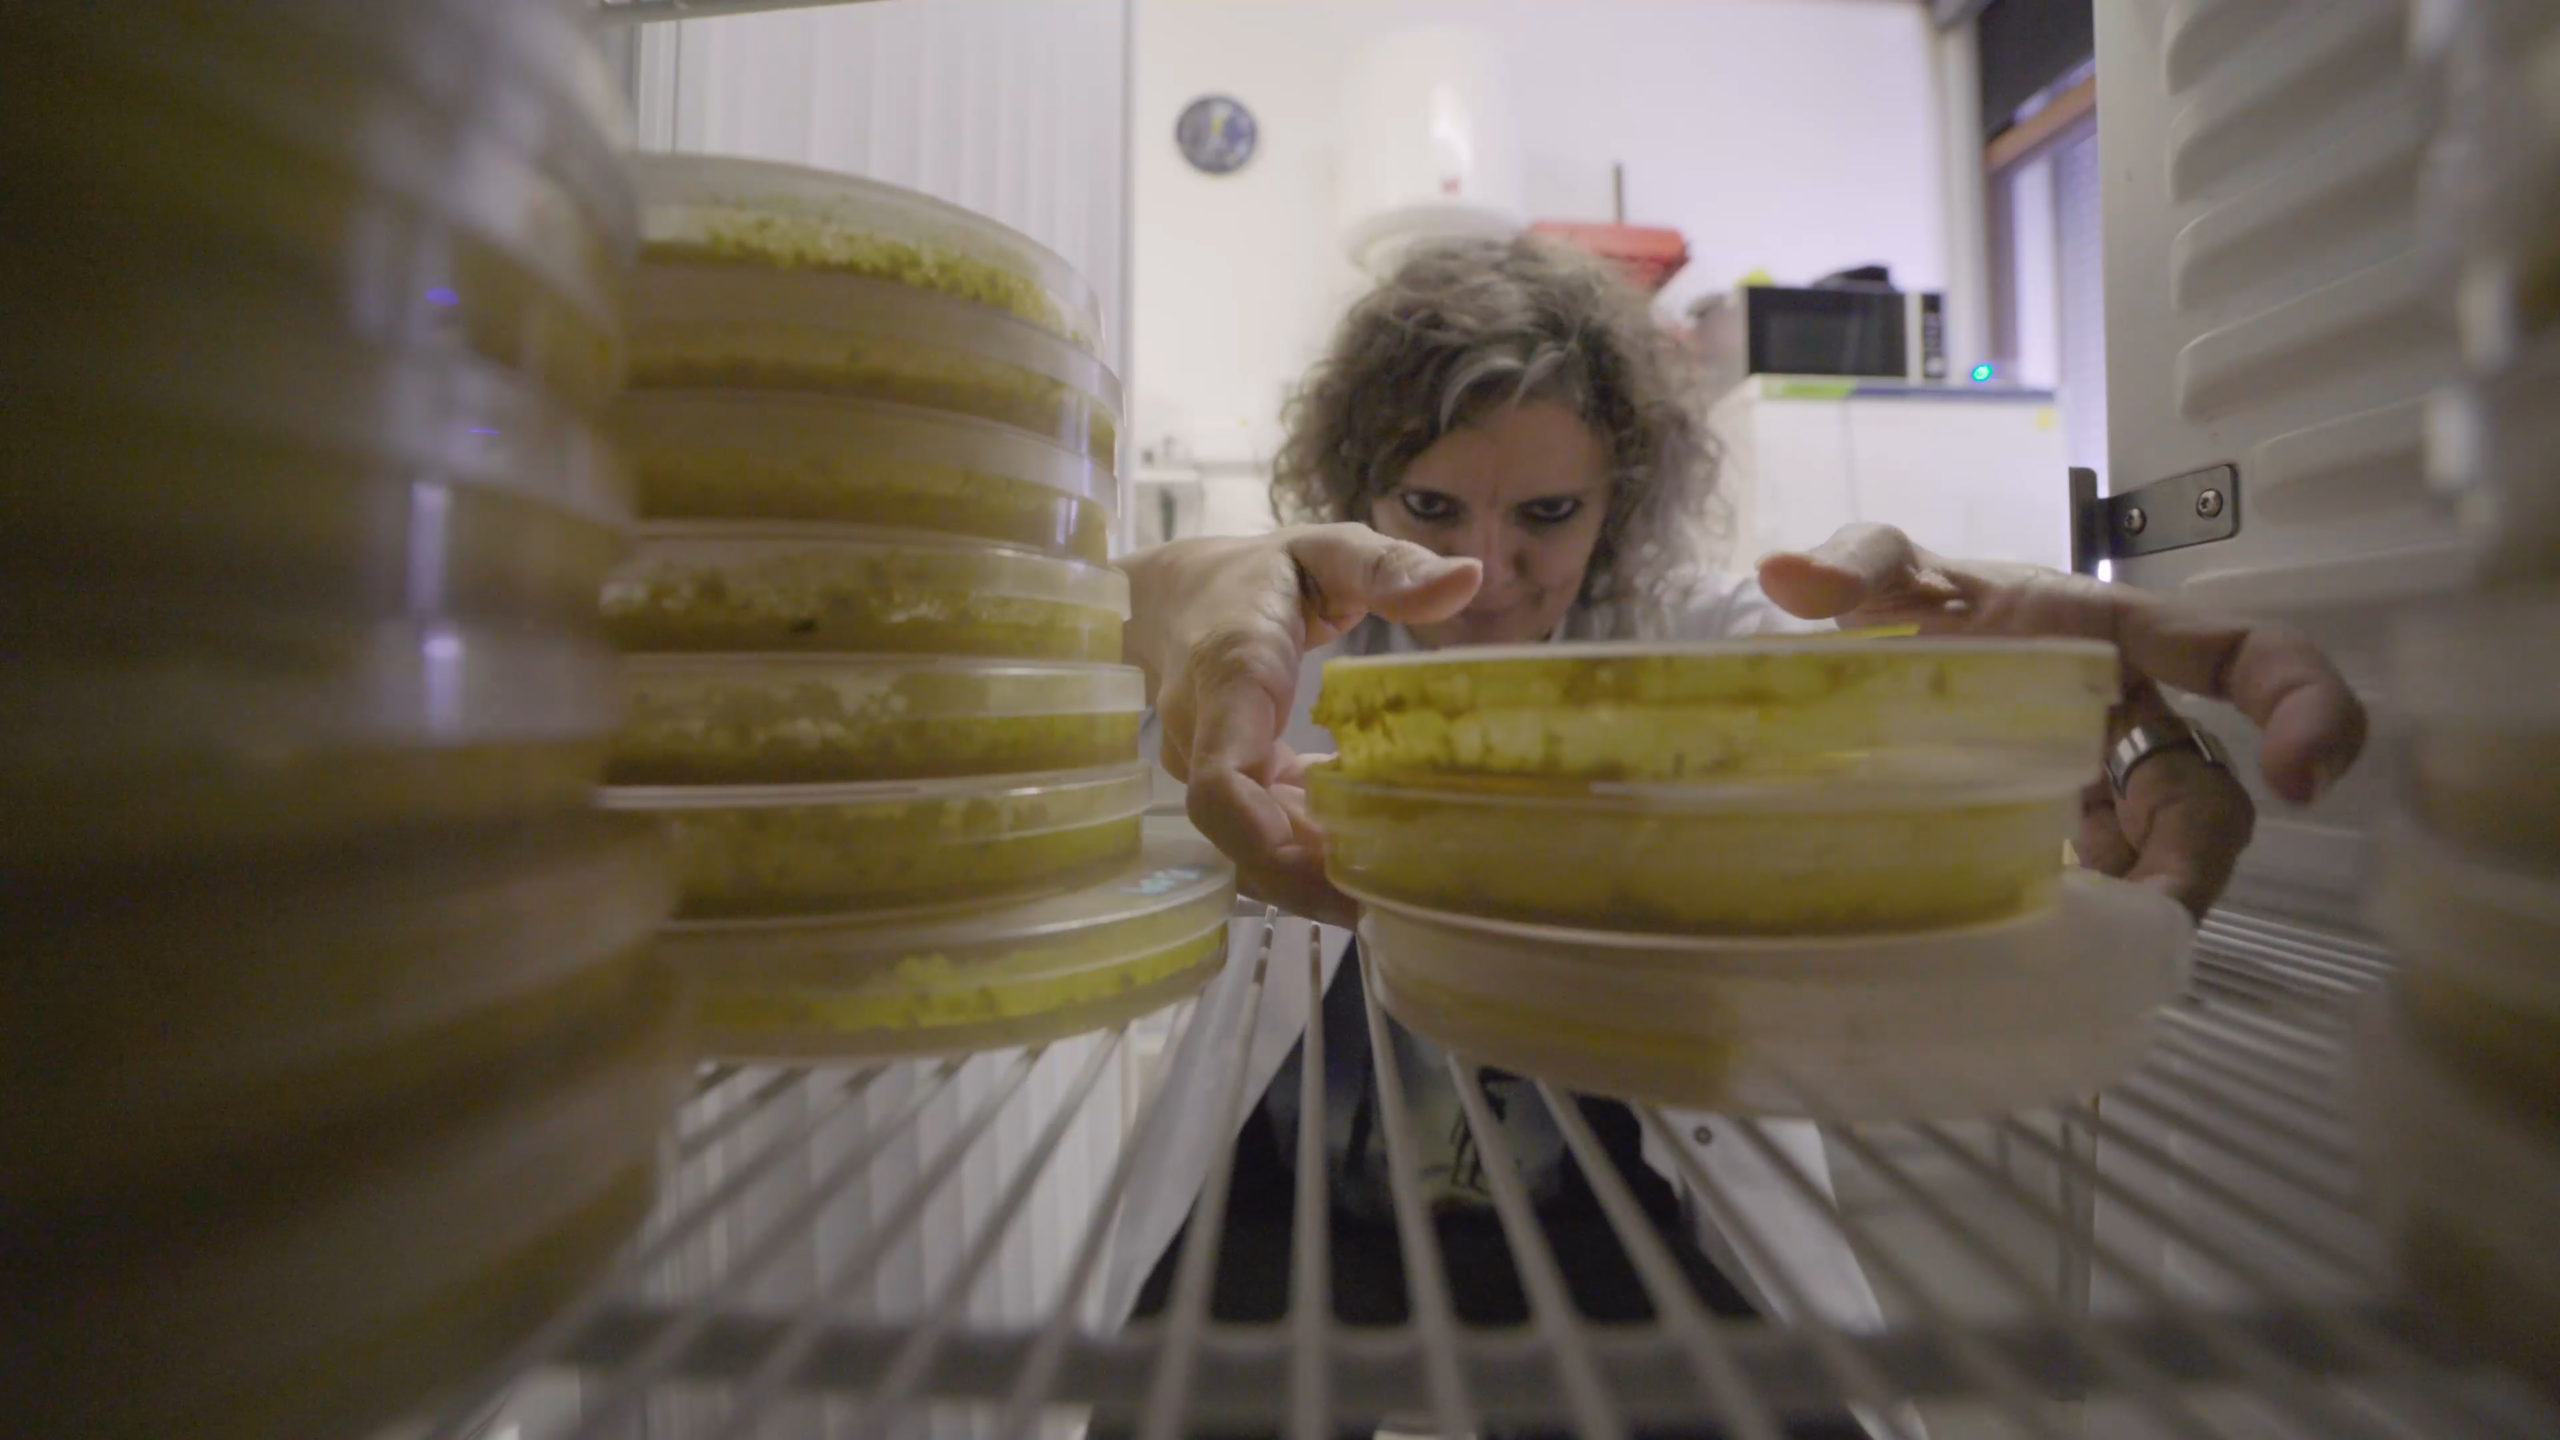 a scientist grabs a stack of petri dishes filled with yellow slime mold from an incubator